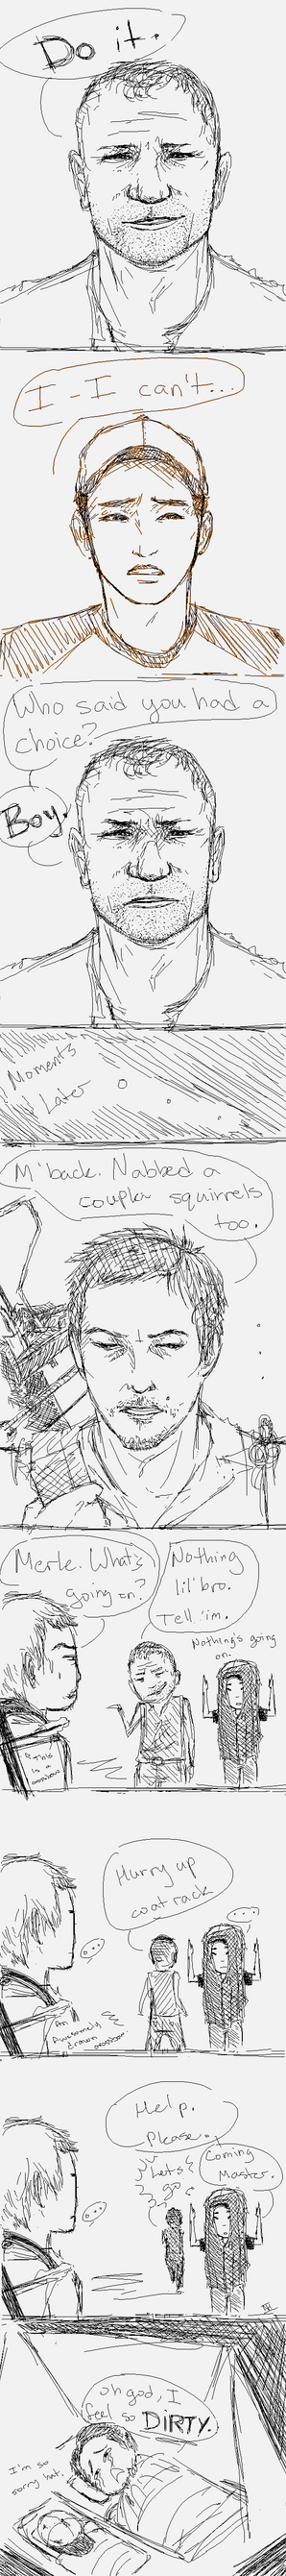 TWD-You whore. by Kai152